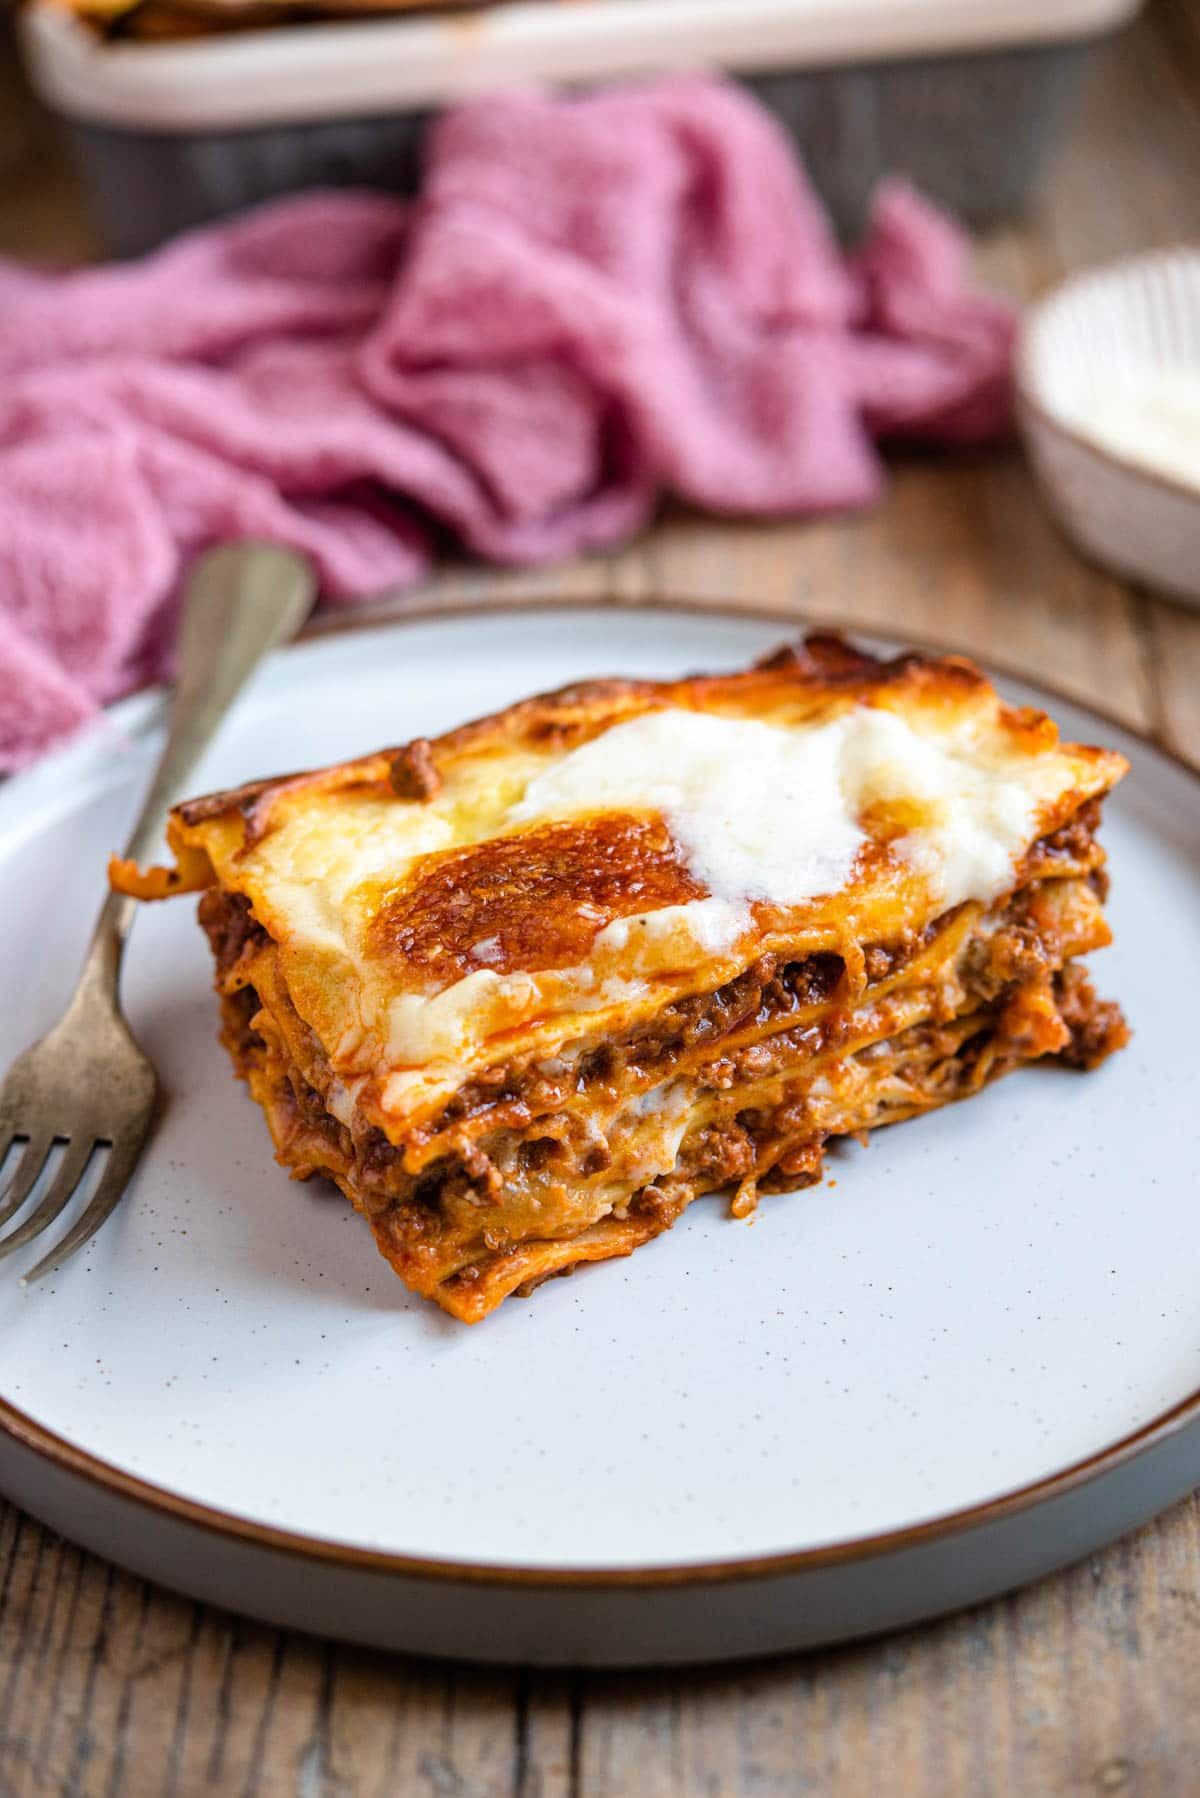 A slice of beef lasagna on a plate